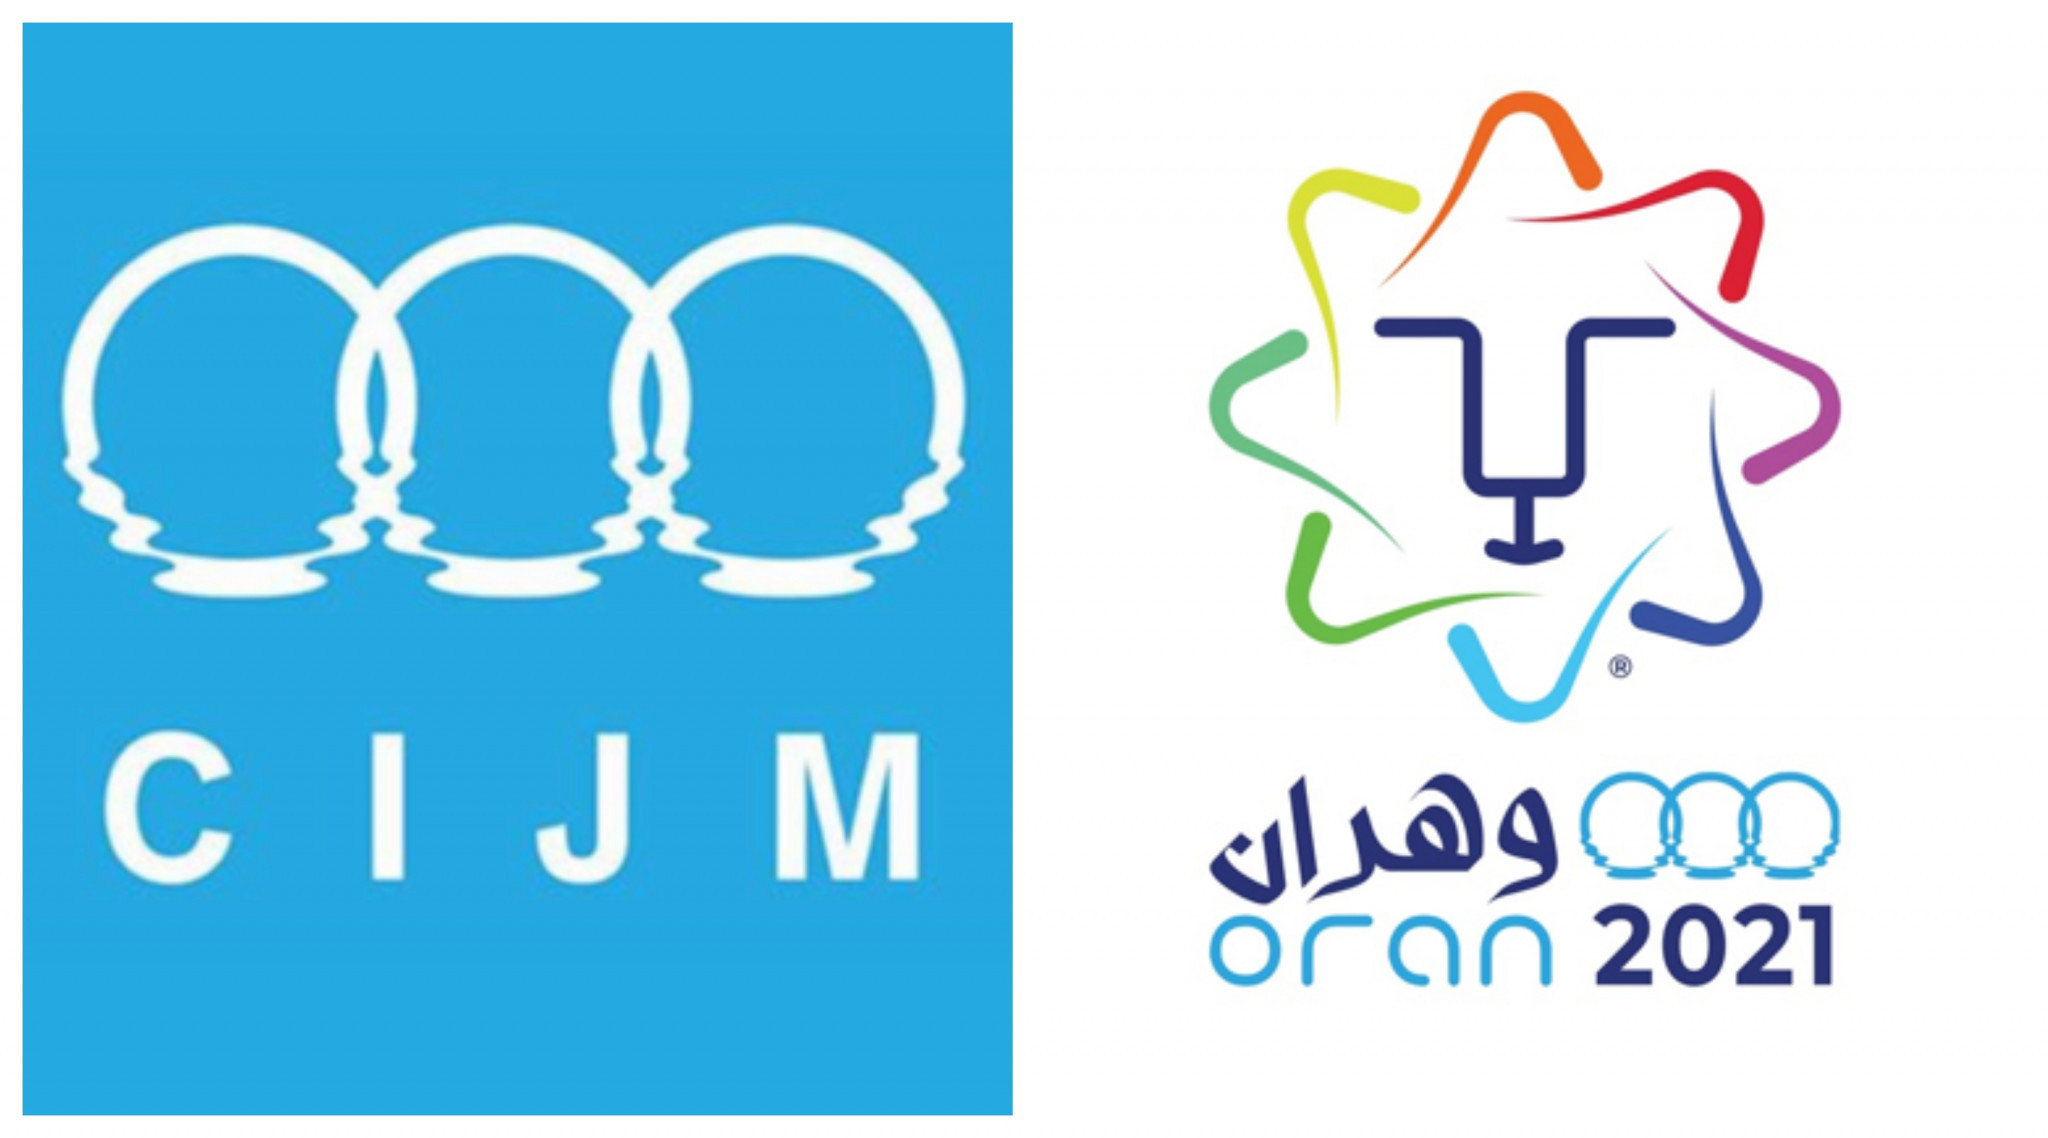 Mediterranean Games in Oran moved back to 2022